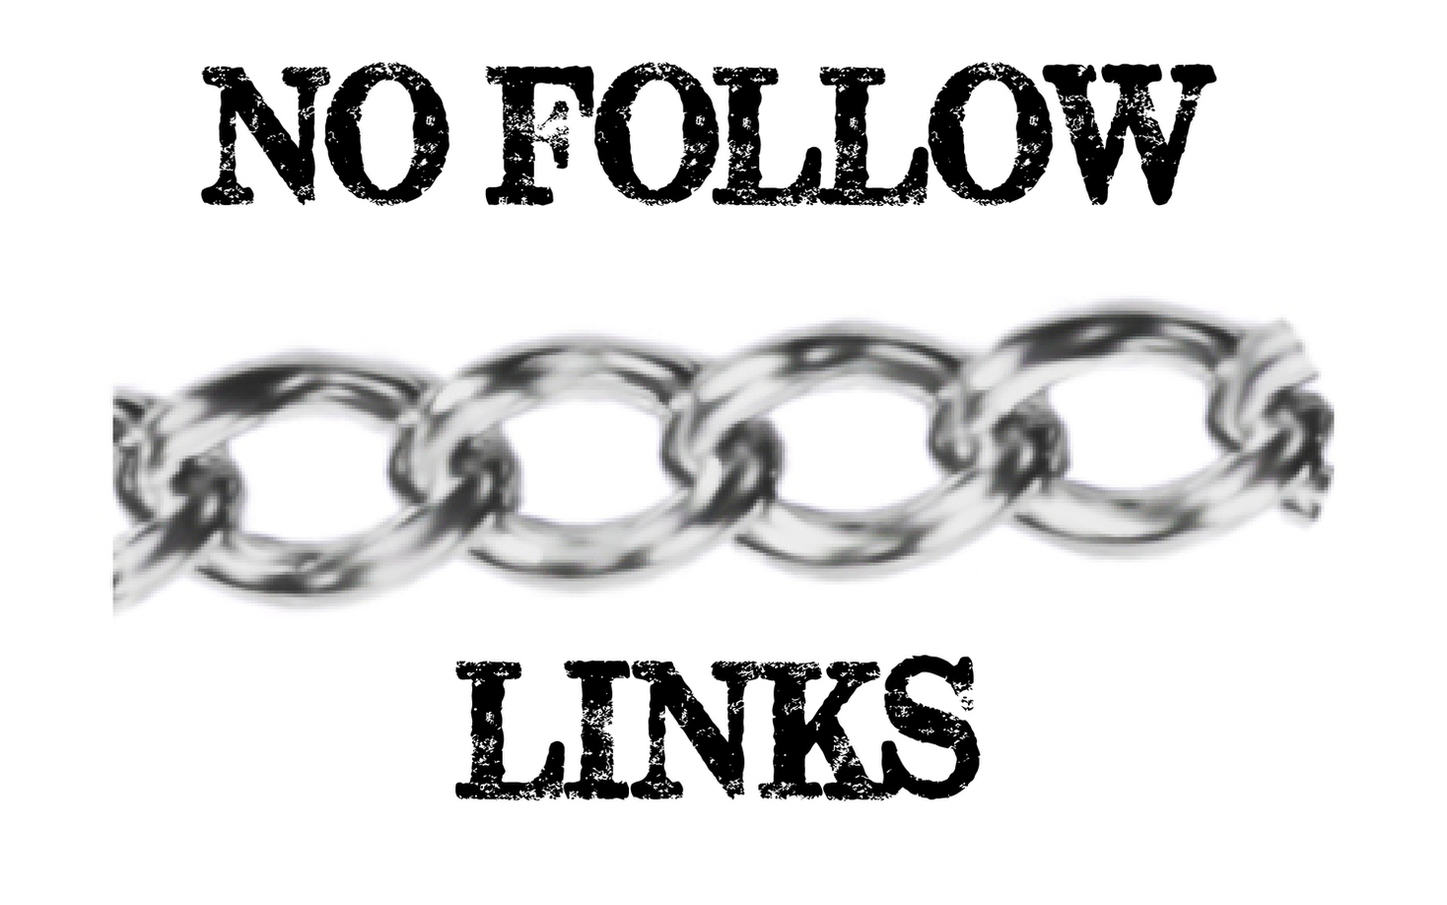 Follow vs. Nofollow